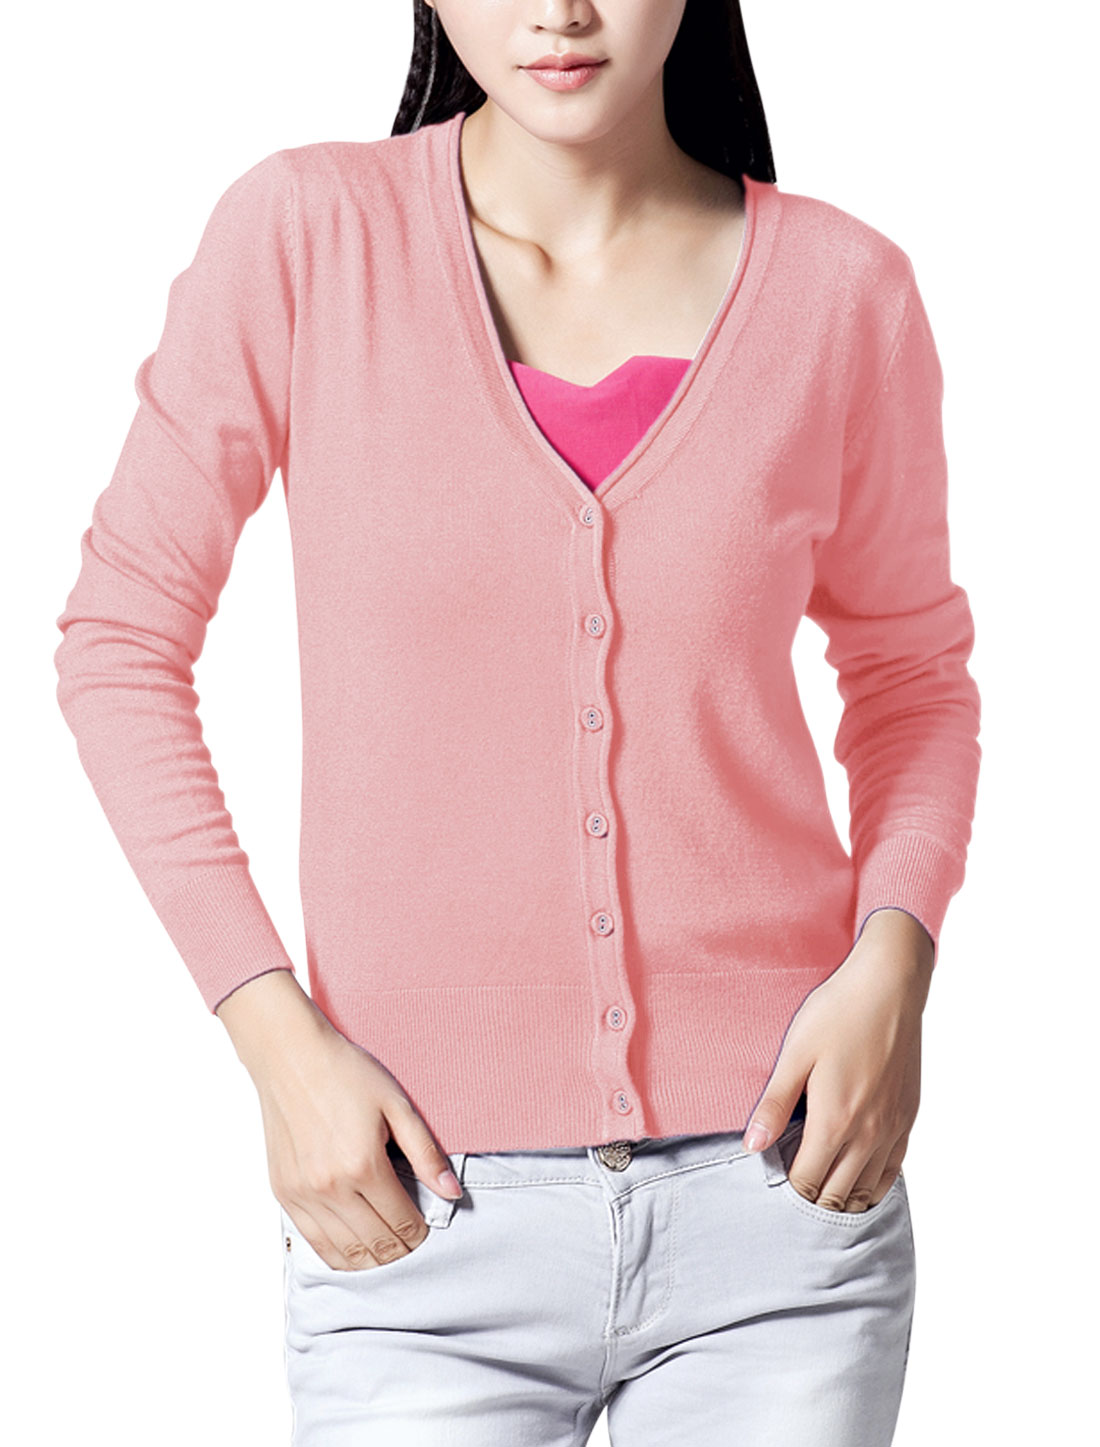 Women Long Raglan Sleeve Slim Fit Knit Cardigan Pink M